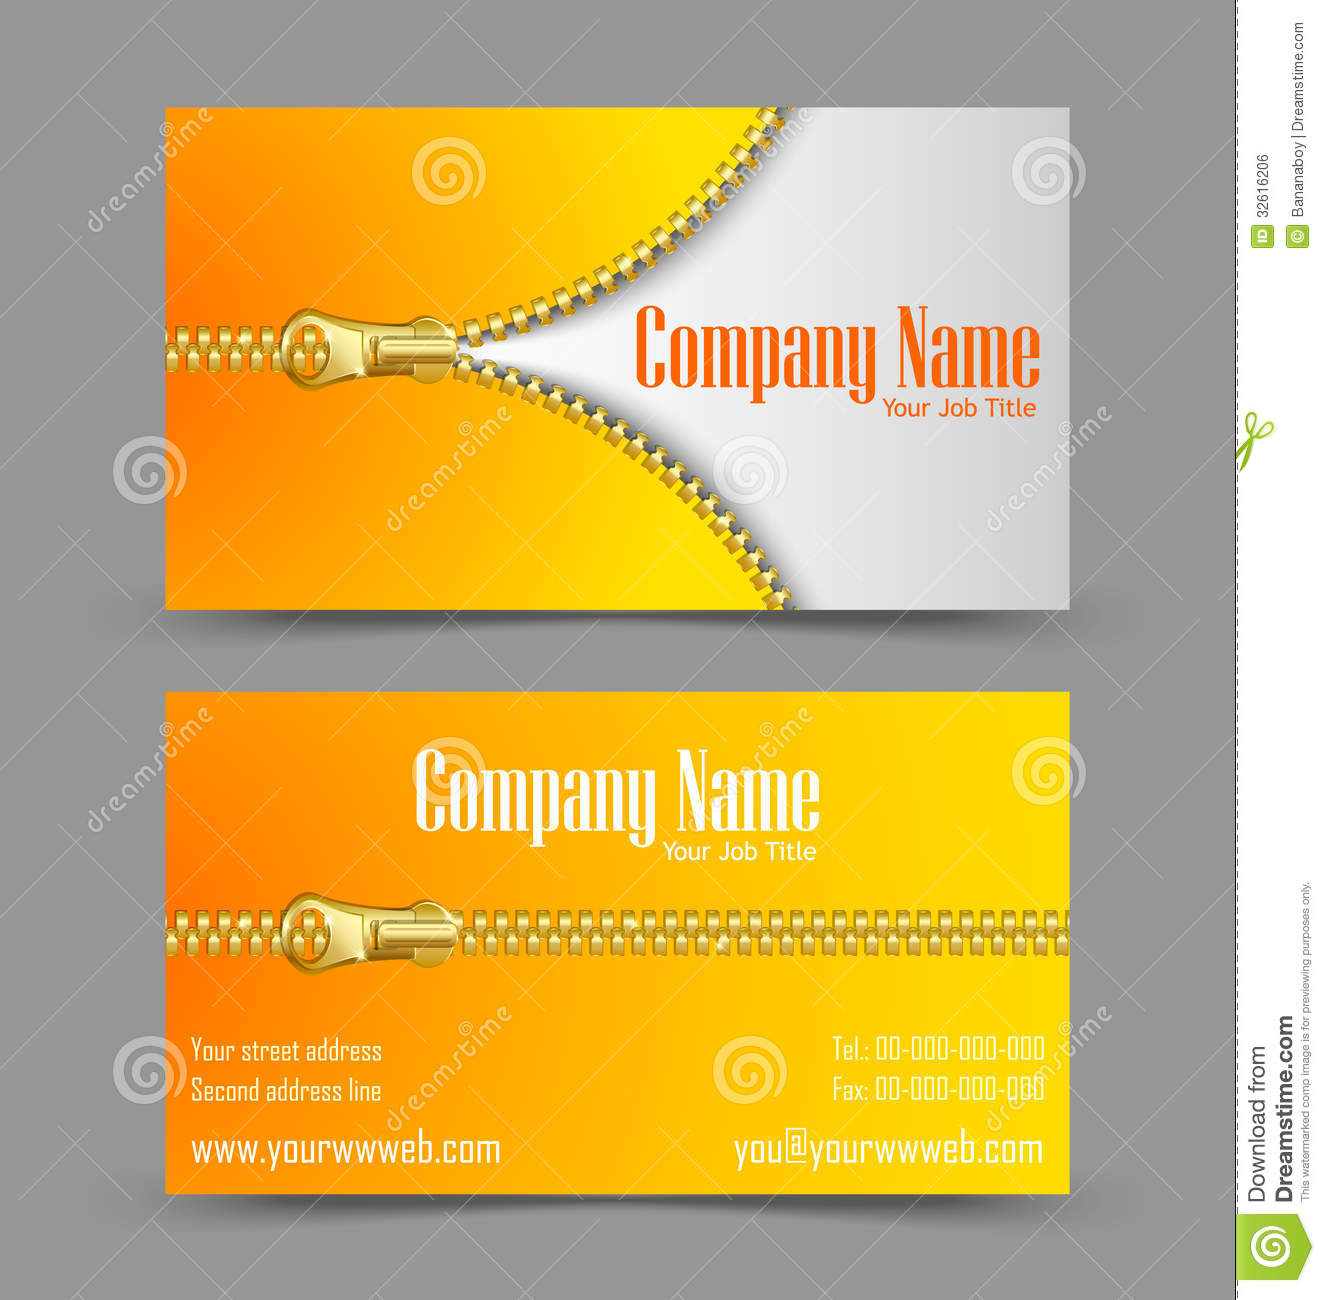 Zipper theme business card stock vector. Illustration of businessman ...